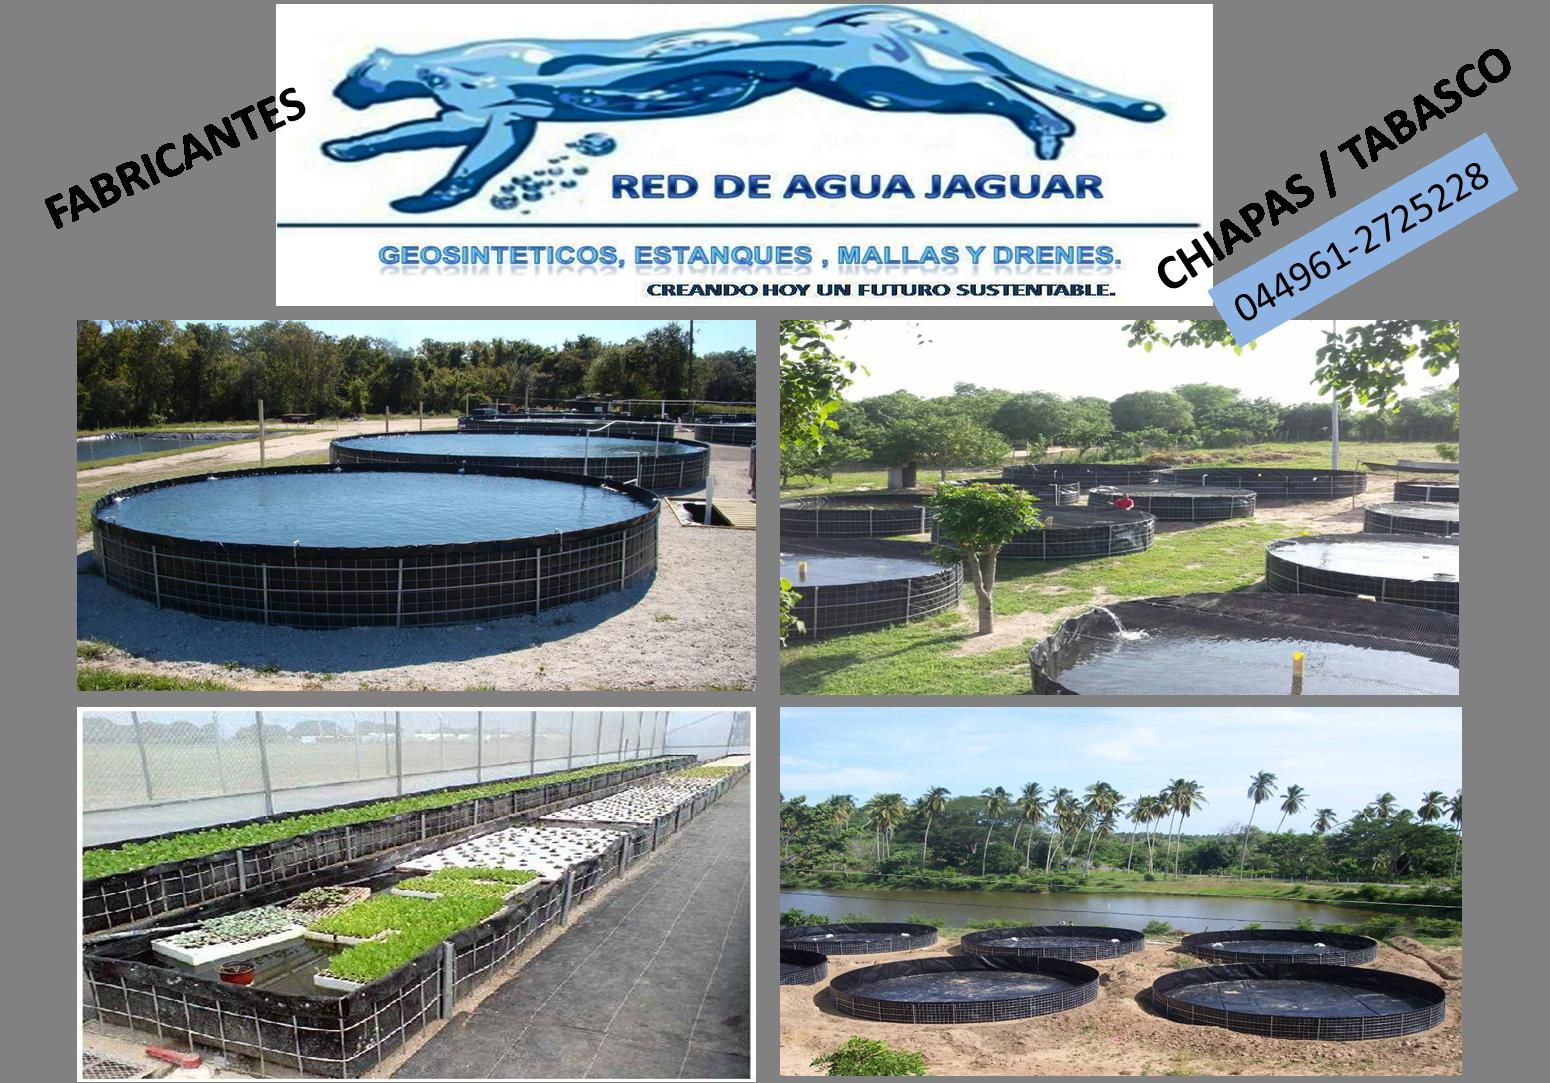 Venta de geomembrana hdpe geotetil estanques circulares for Estanque geomembrana